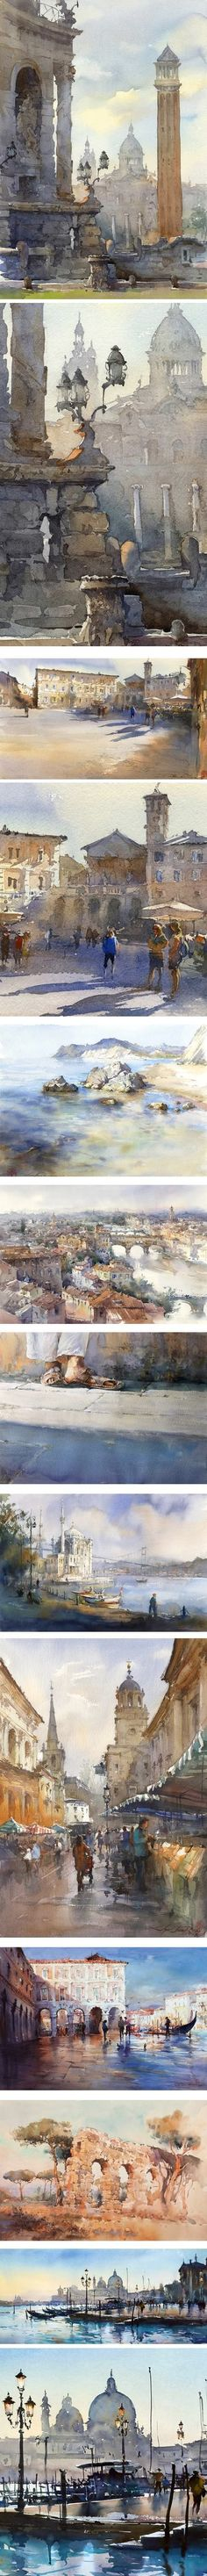 Igor Sava, watercolor cityscape Italy #watercolorarts